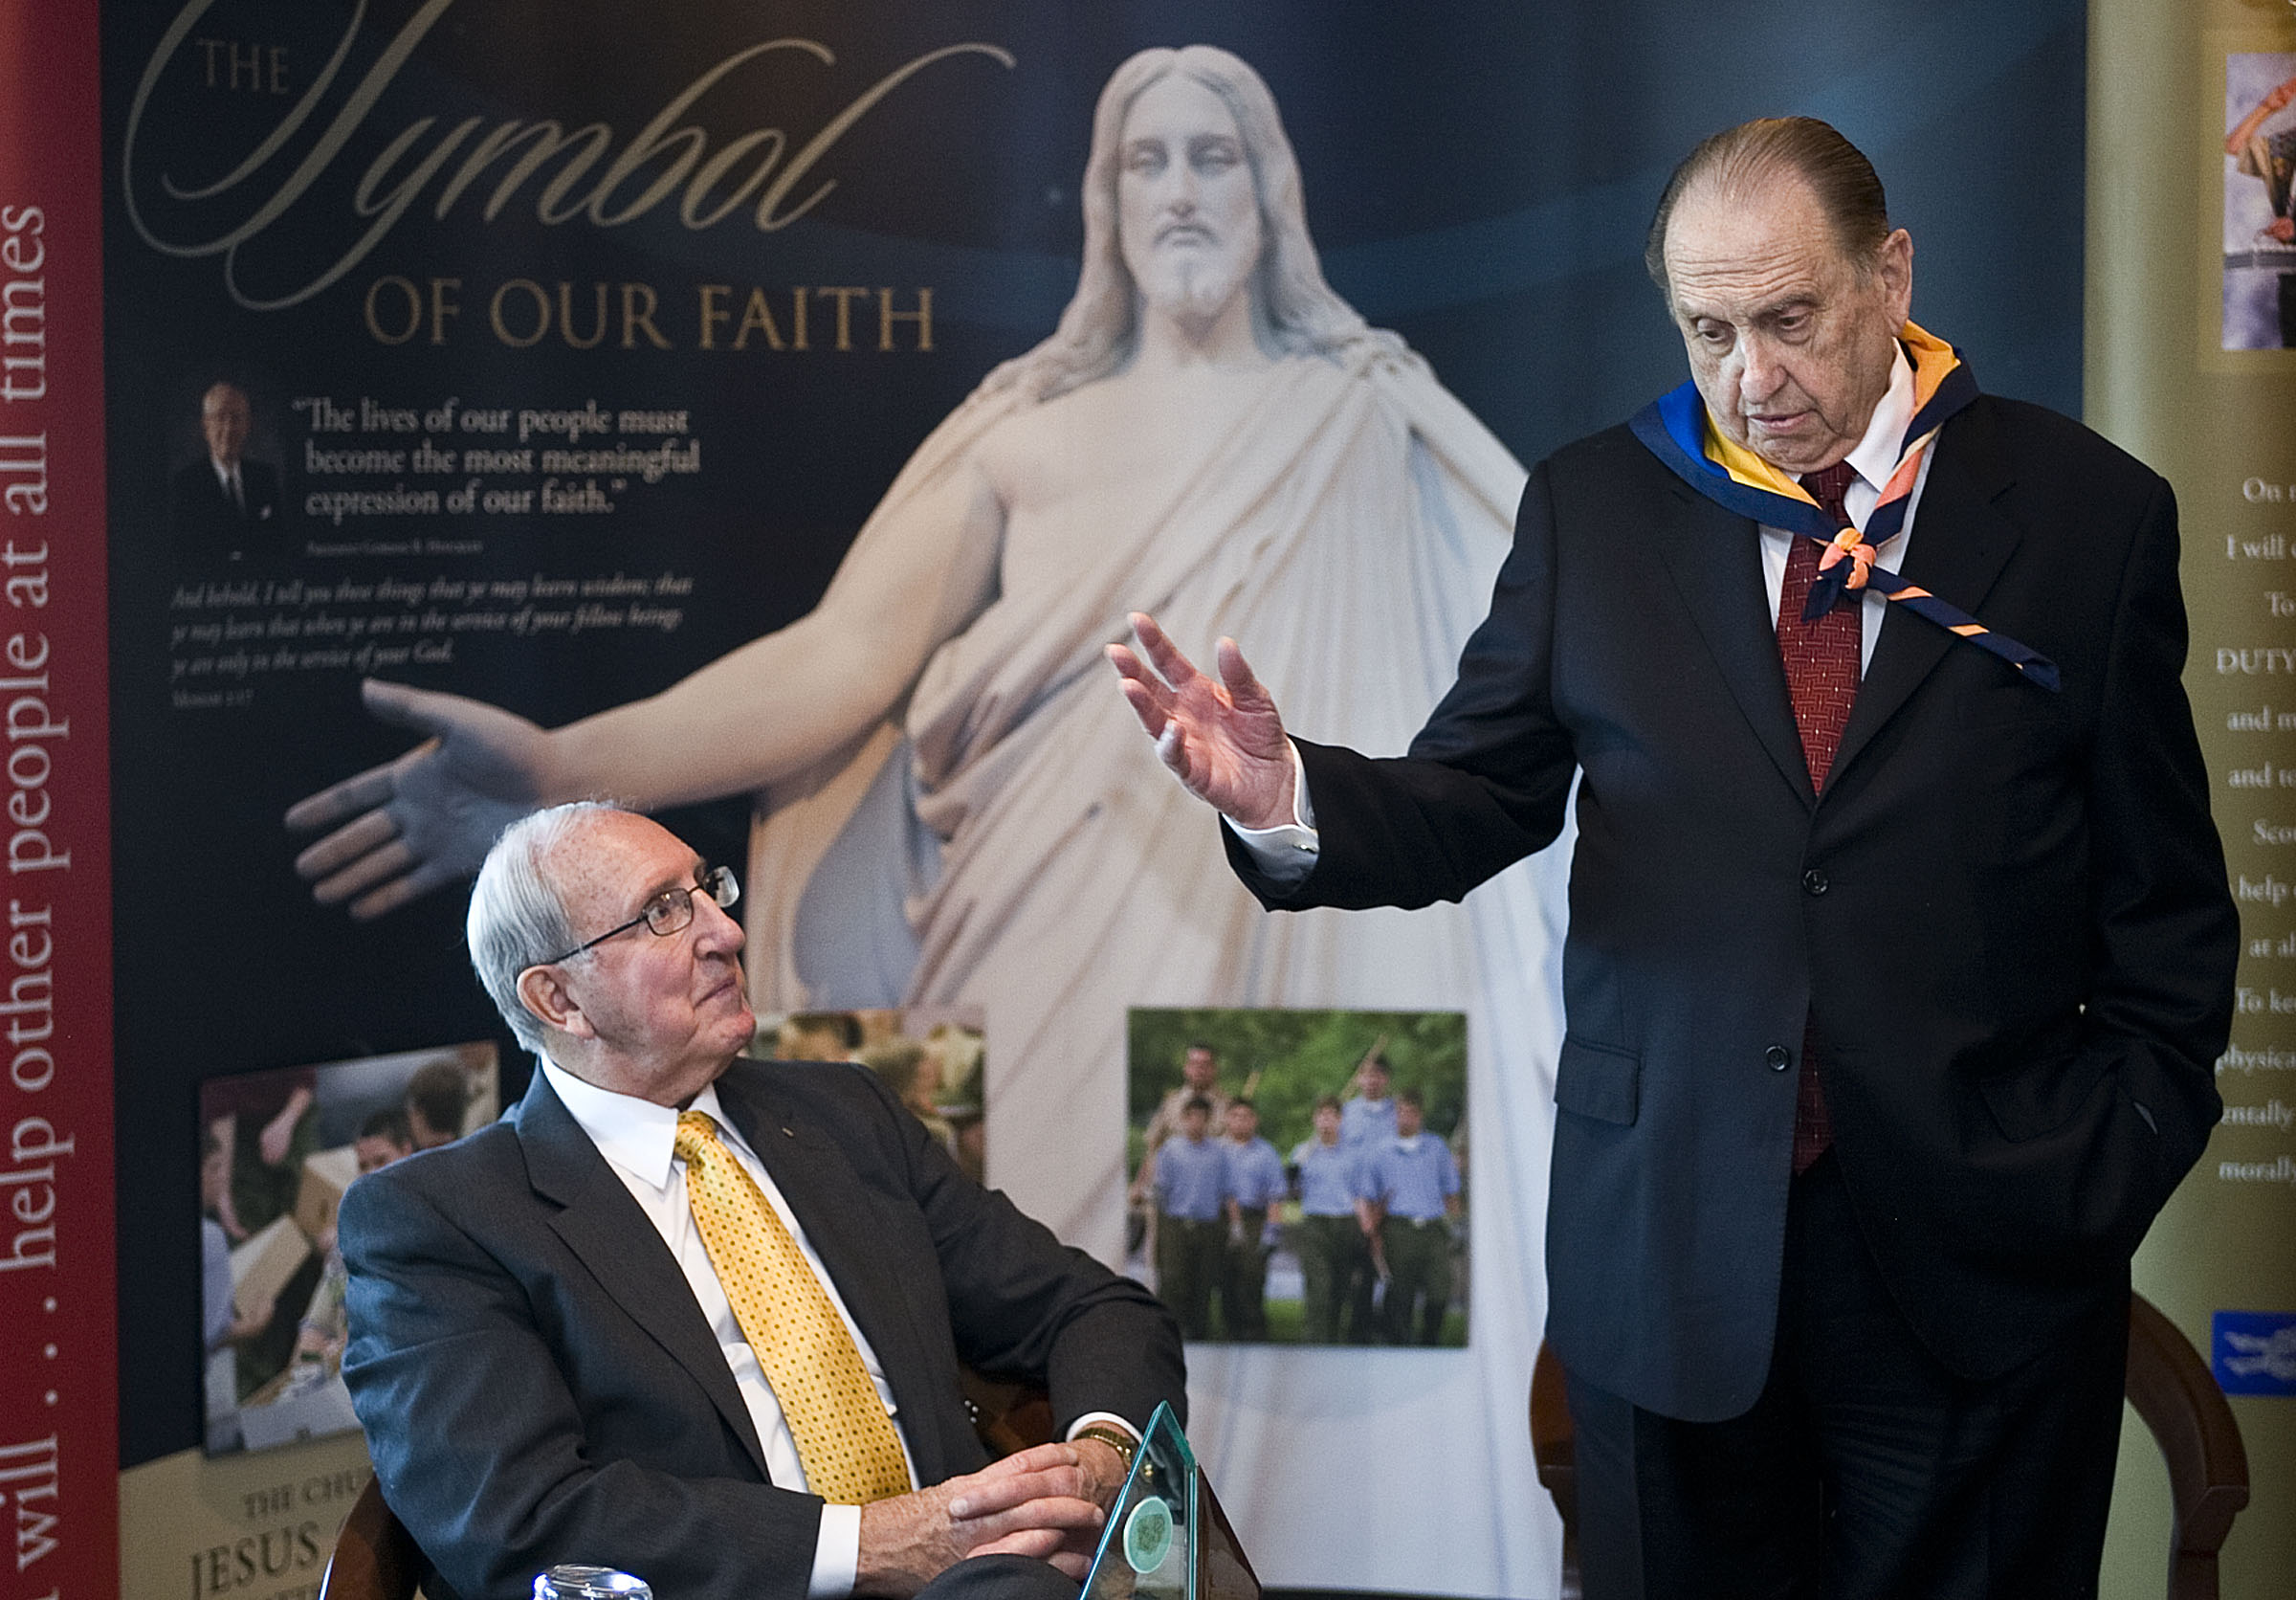 President Thomas S. Monson of The Church of Jesus Christ of Latter-day Saints, right, and Elder Vaughn J. Featherstone, seated, attend a meeting with the Church's current and former members of the Young Men general presidency at the Joseph Smith Memorial Building in Salt Lake City on Feb. 2, 2009. Elder Featherstone was YM general president from 1985 to 1990.